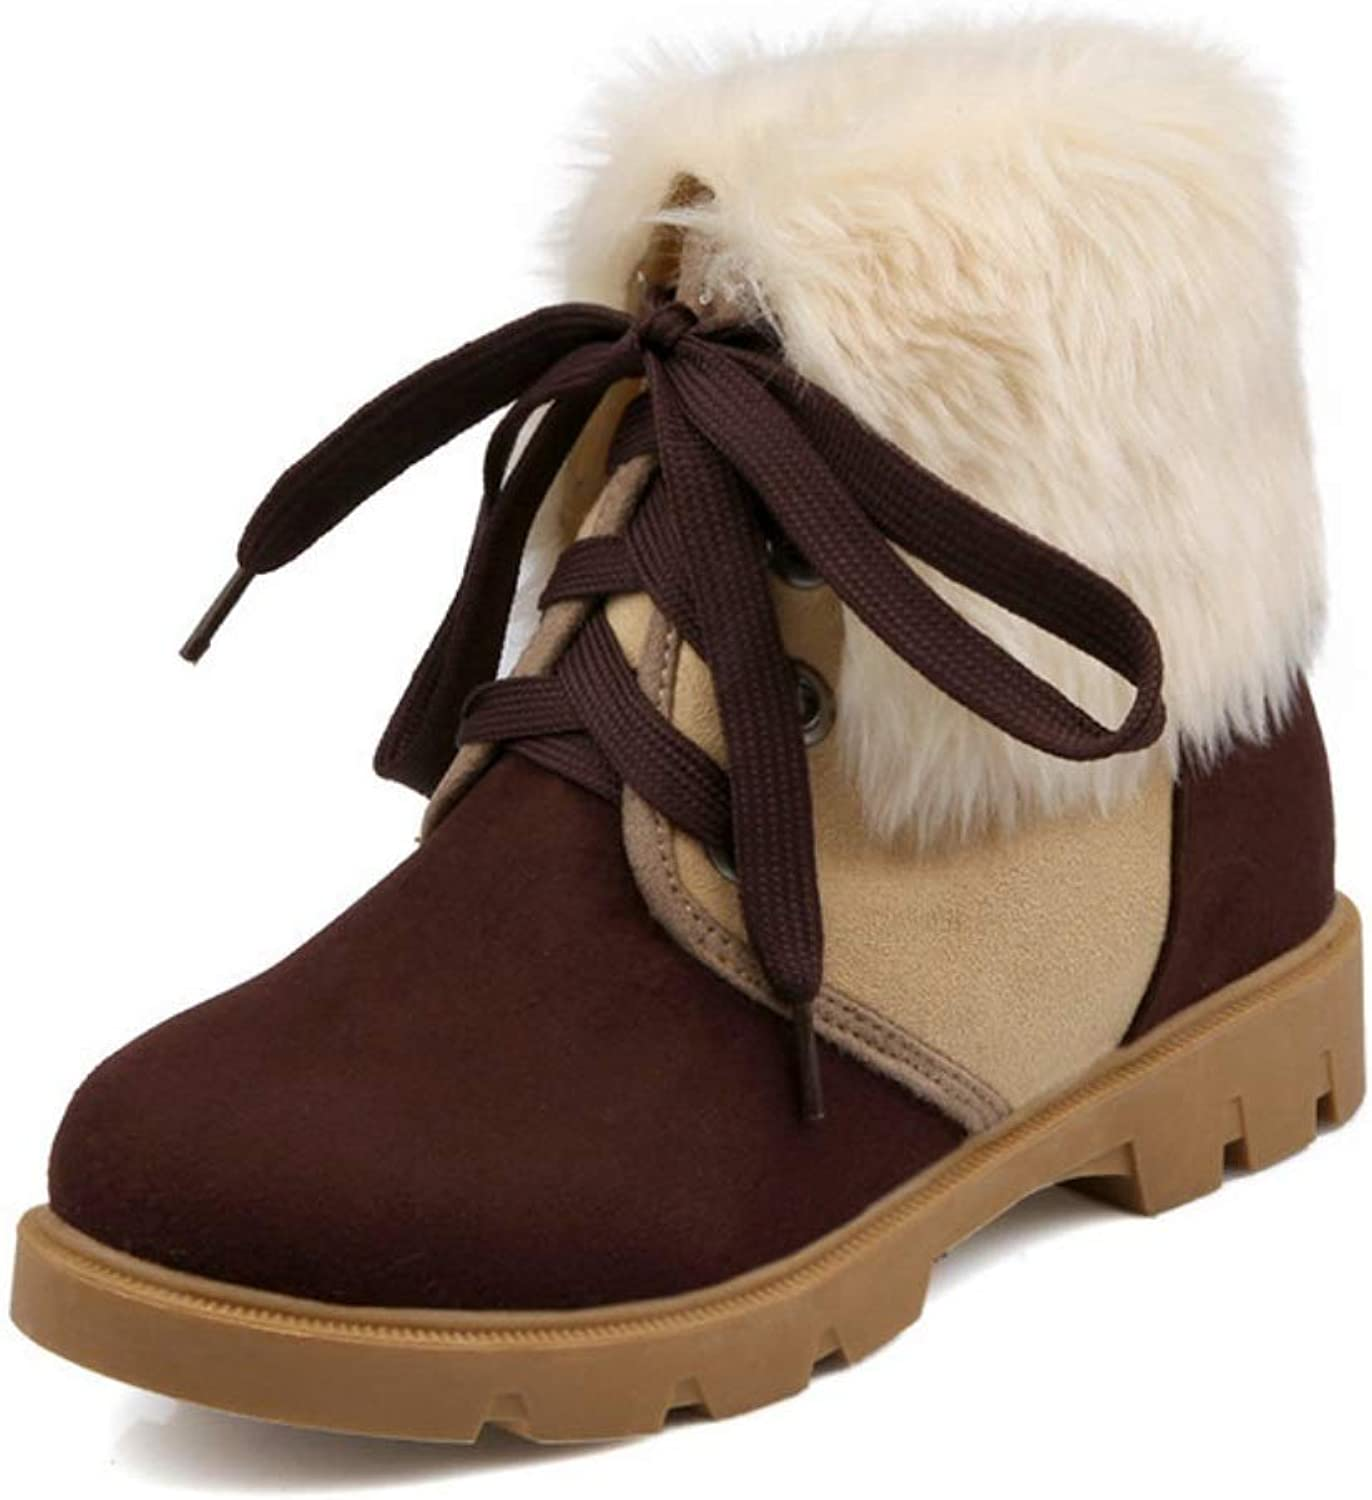 Women's Ankle Flanging Winter Snow Boots Women Warm Grip Sole Boots Outdoor Walking Non-Slip shoes Short Boots Suede Lace Up Wedge Creepers Boots